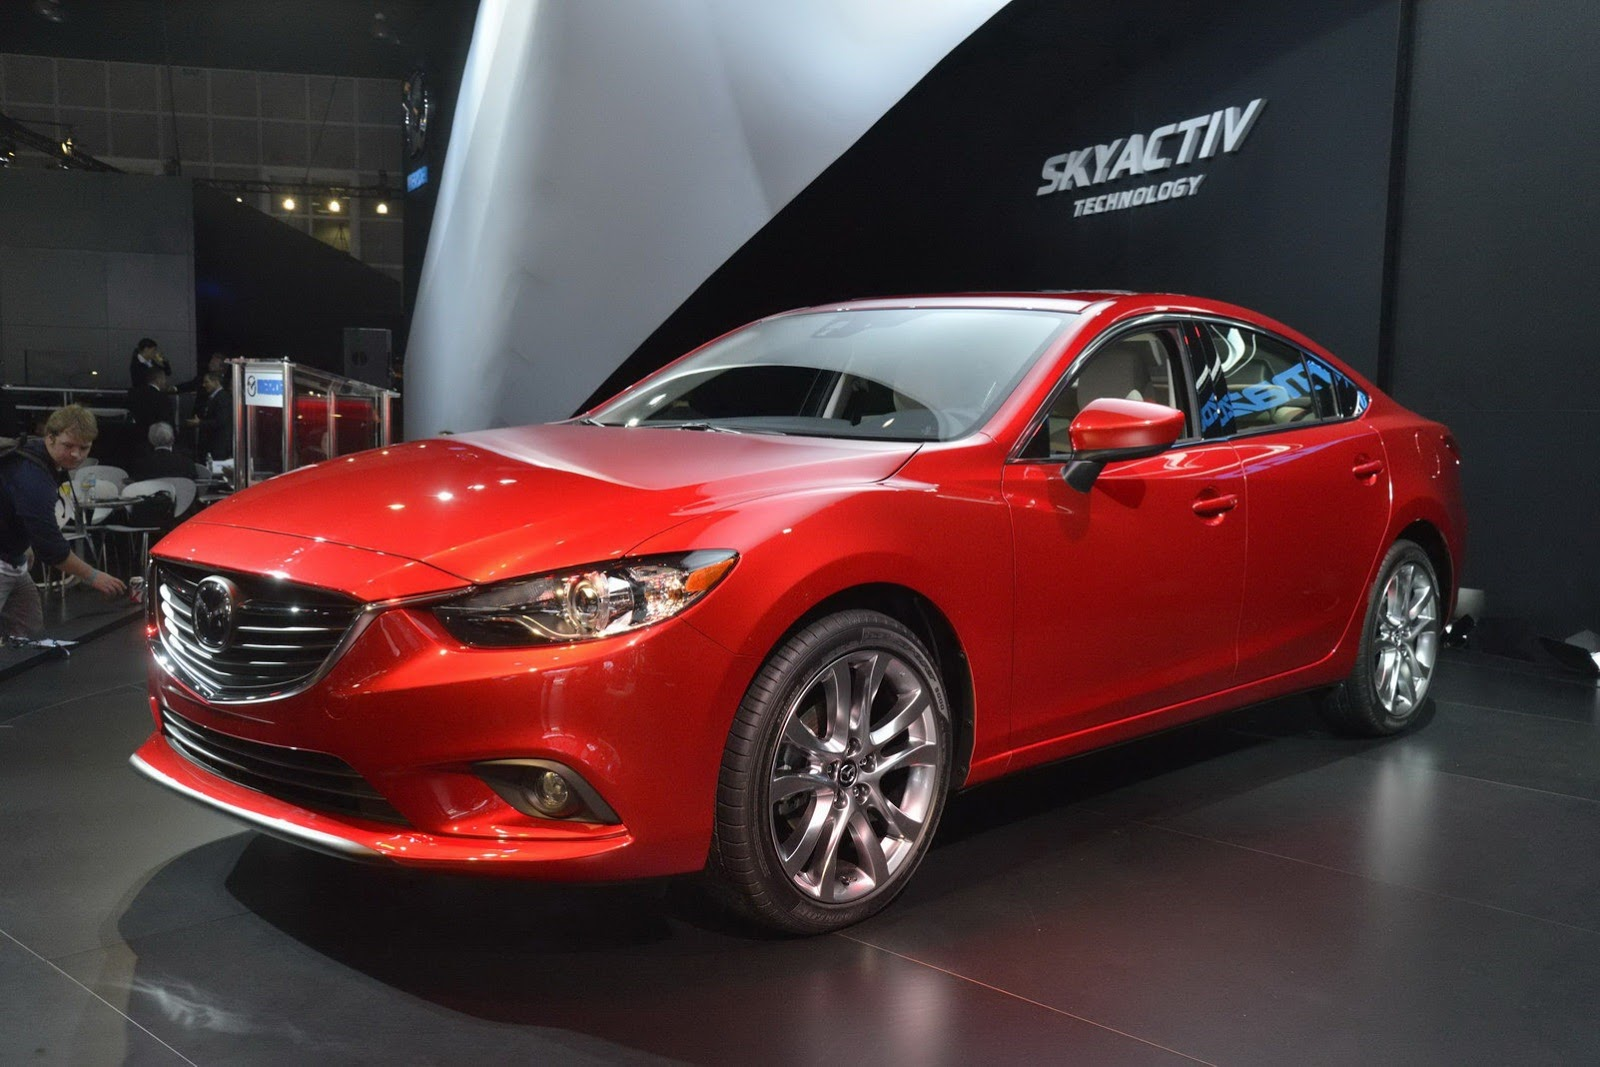 2014 Mazda6 sedan priced from $20,880 in th U.S.